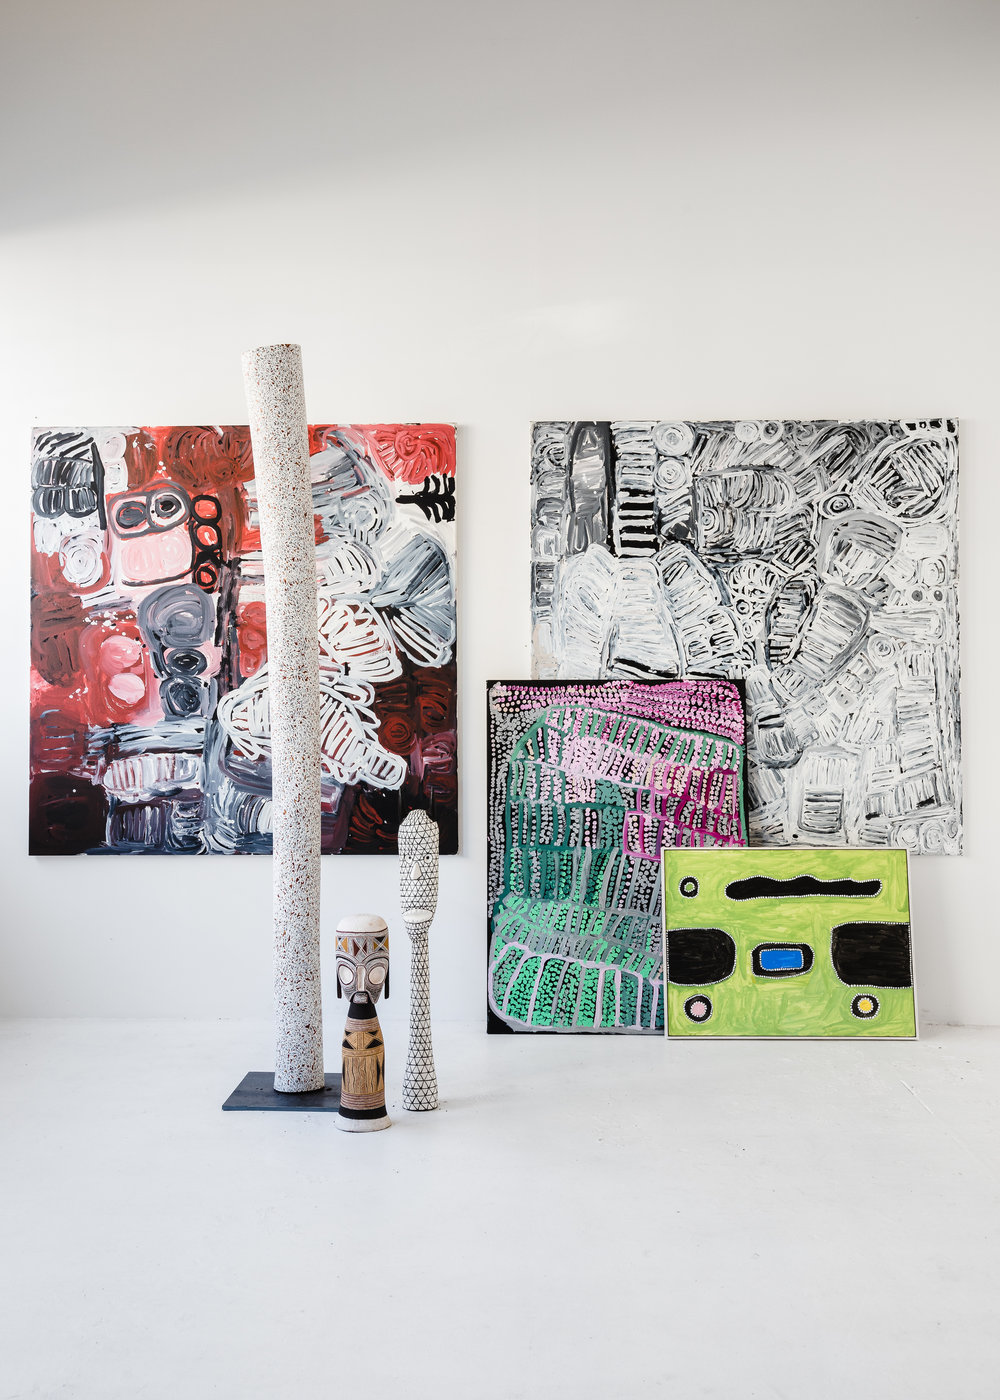 Selection of works from the Hanging Valley stockroom. Image courtesy Amelia Stanwix.